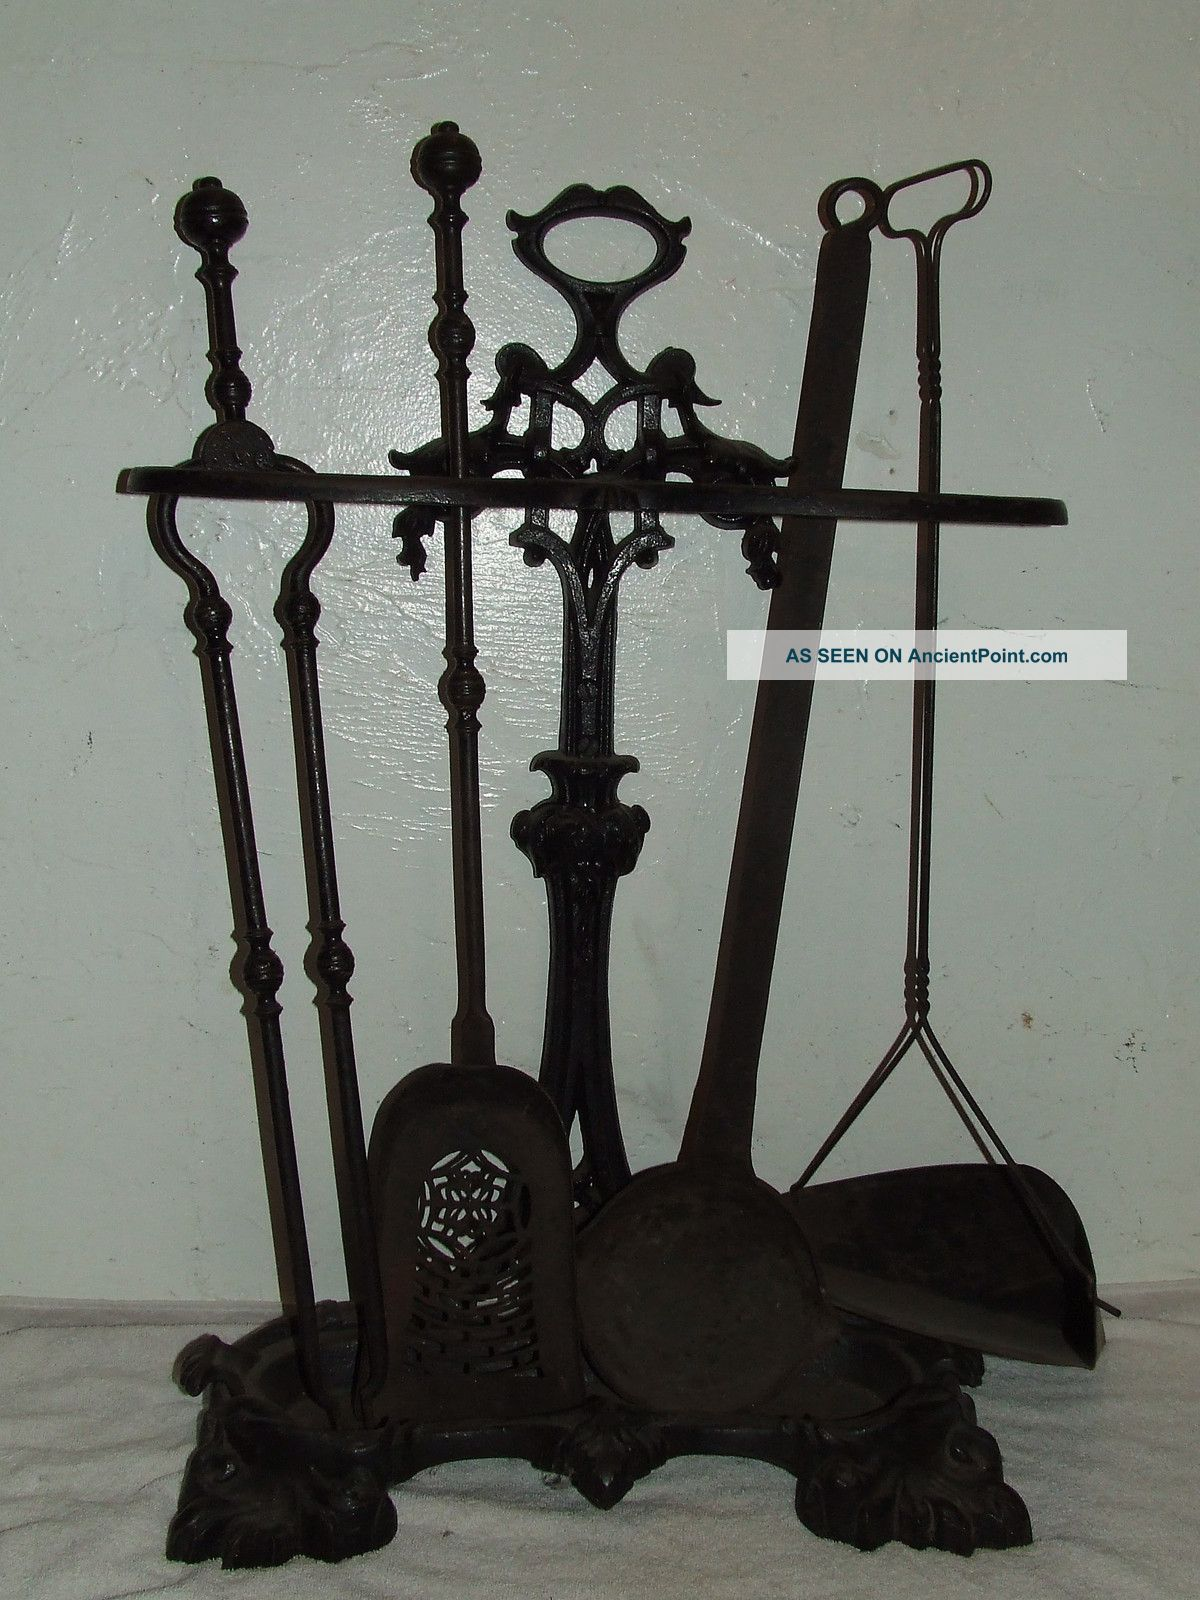 Antique 19th C.  Victorian Cast Iron Fireplace Hearth Tool Set With Stand & Ladle Photos and Information in AncientPoint